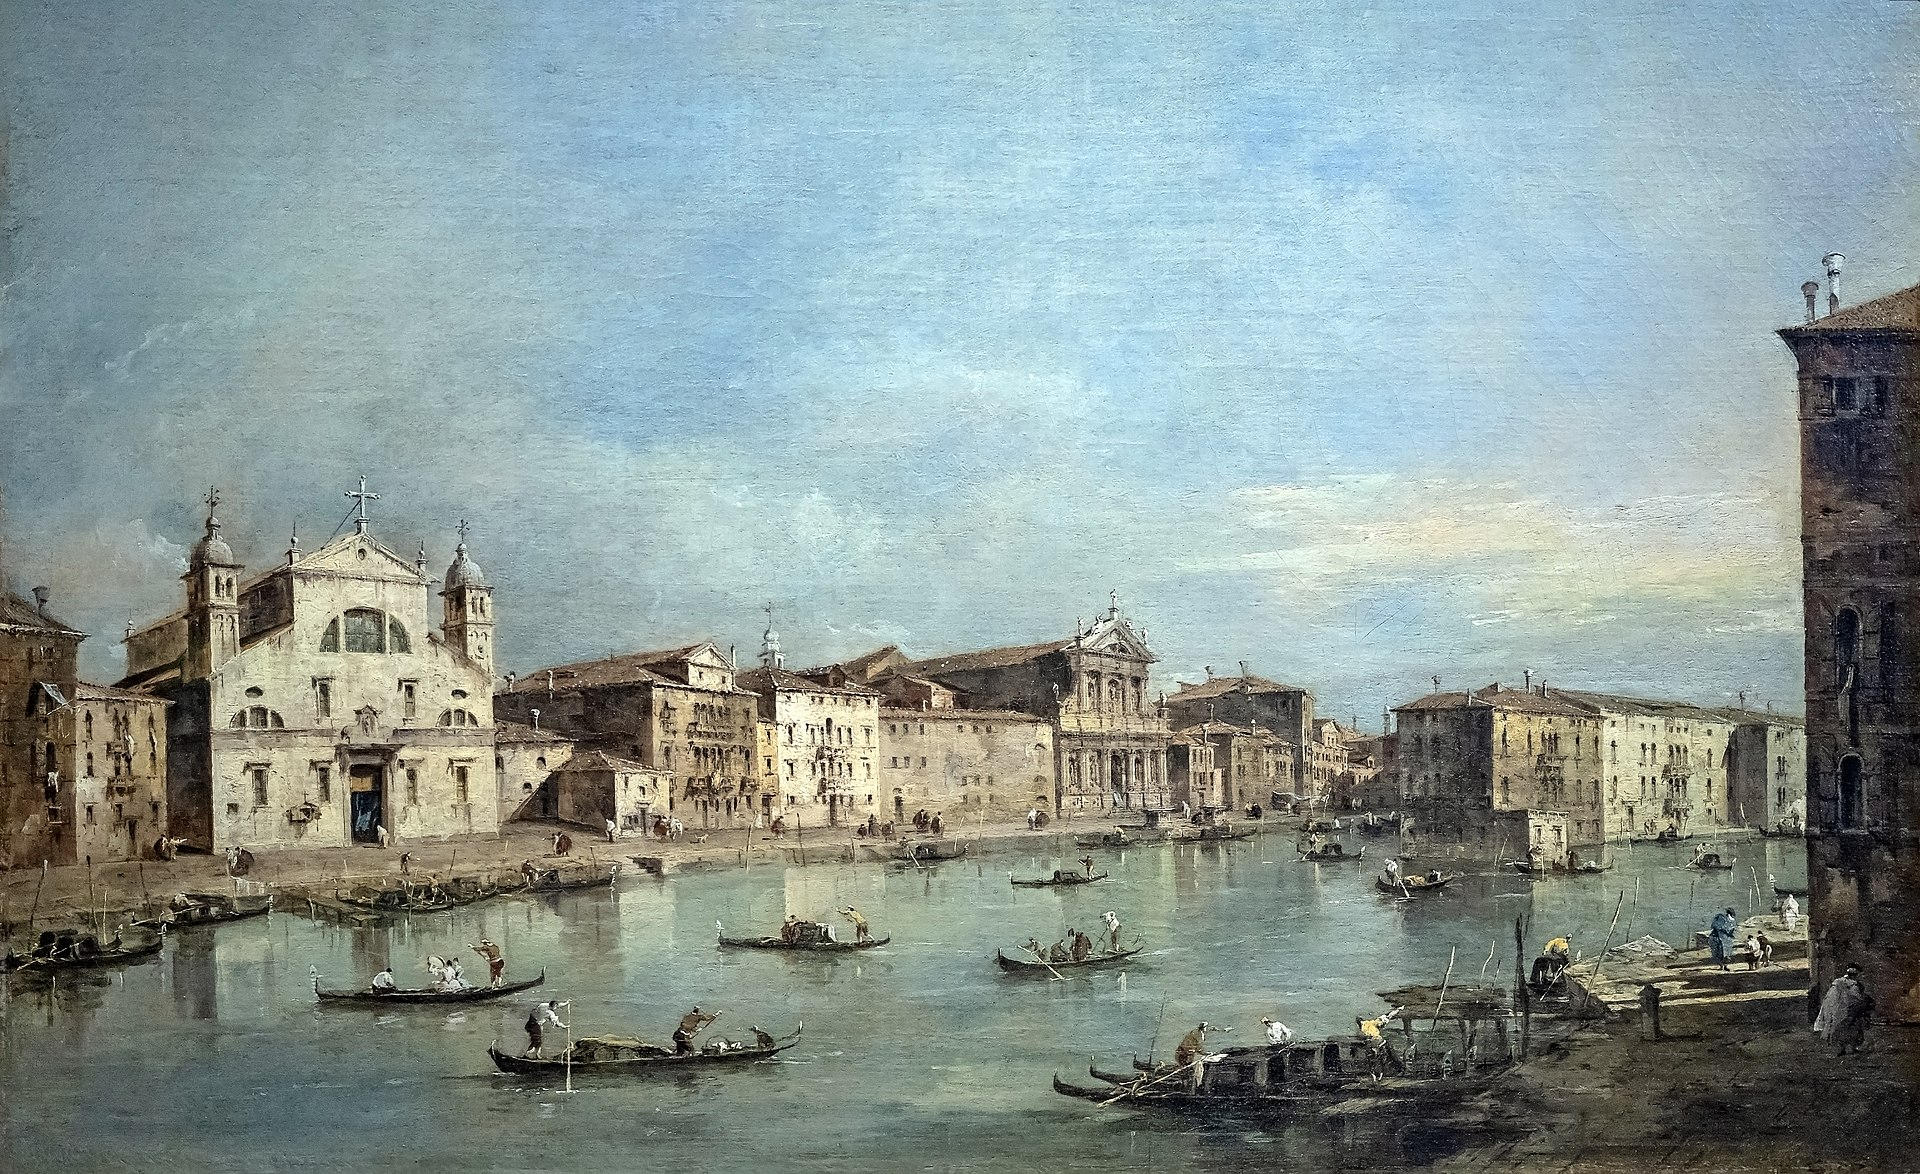 Francesco Guardi Museo Thyssen veduta